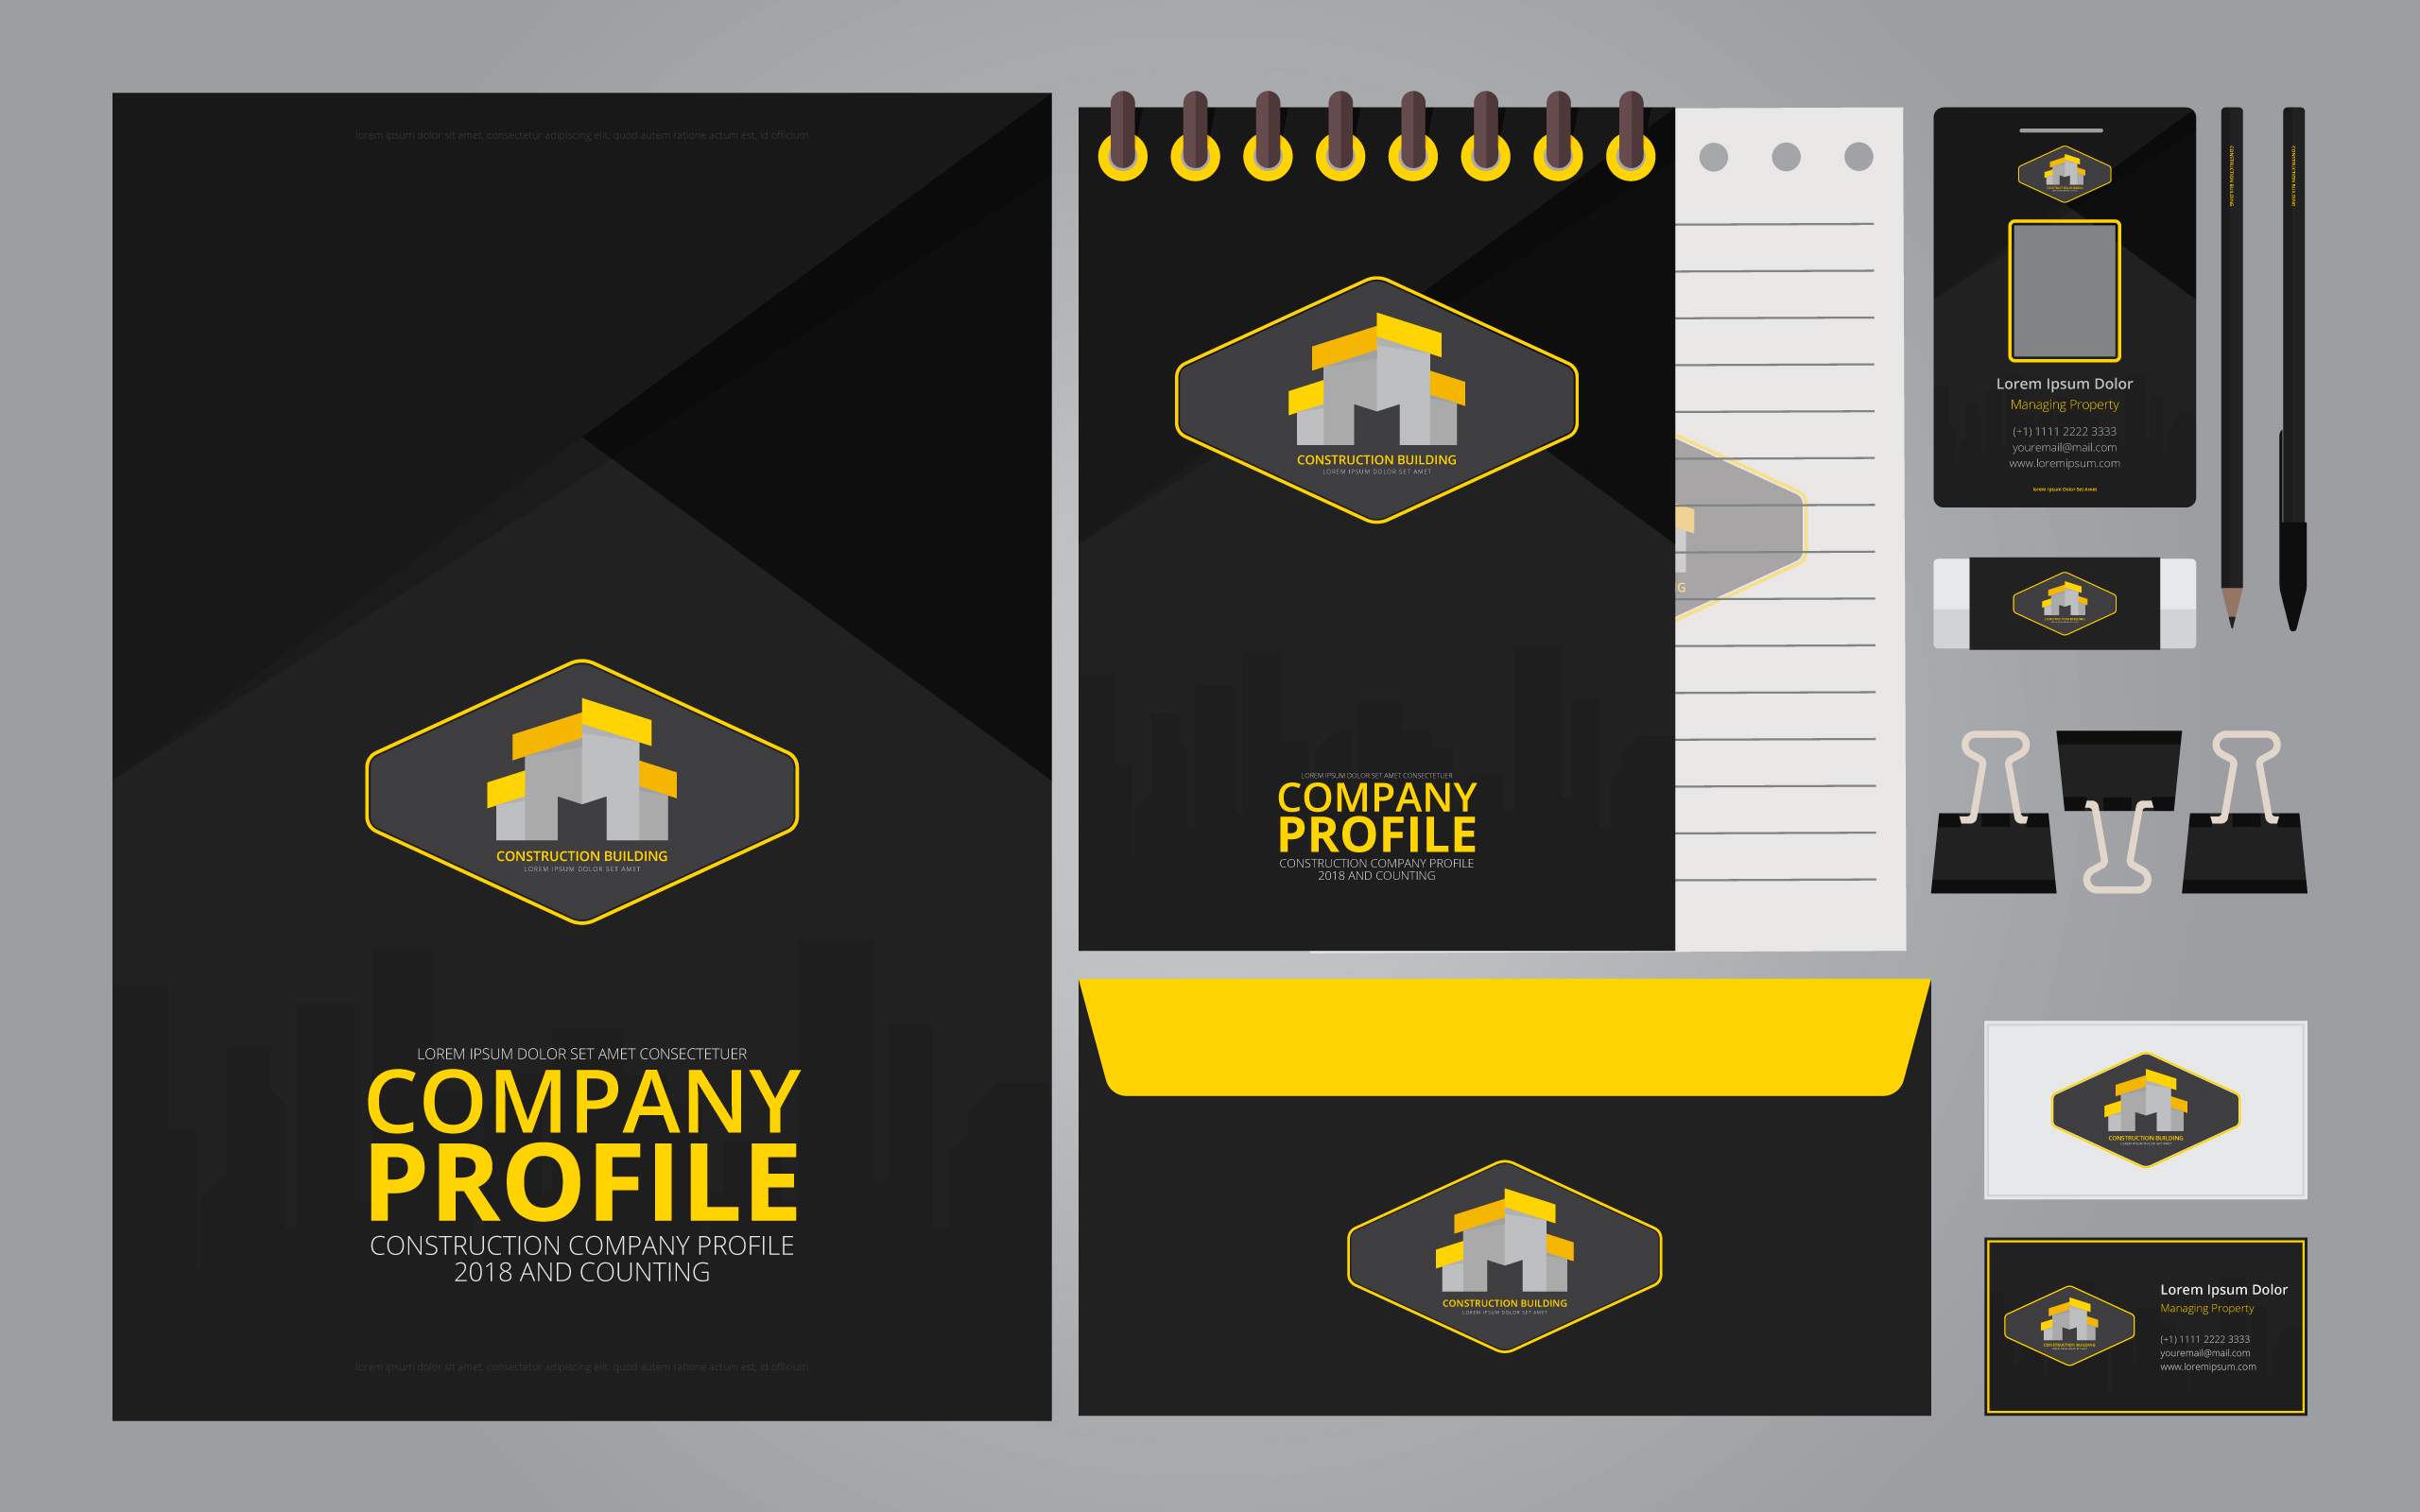 company profile template free vector art 27492 free downloads